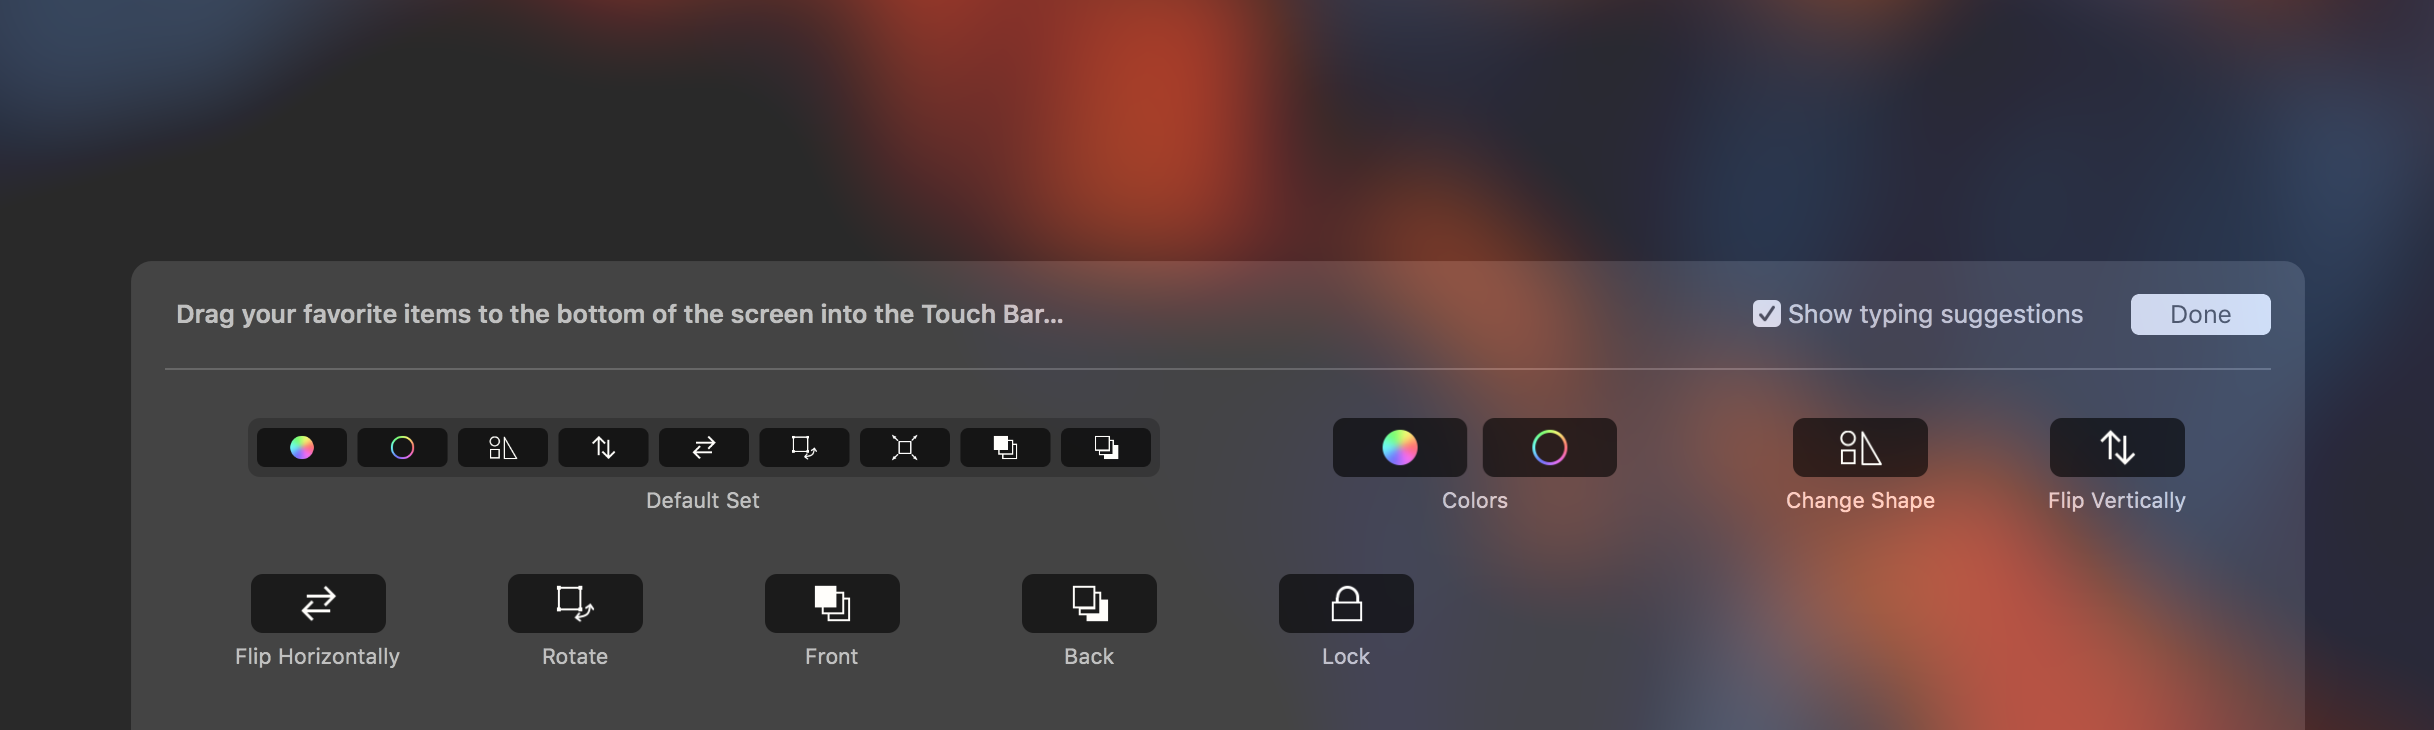 Customizing the Touch Bar